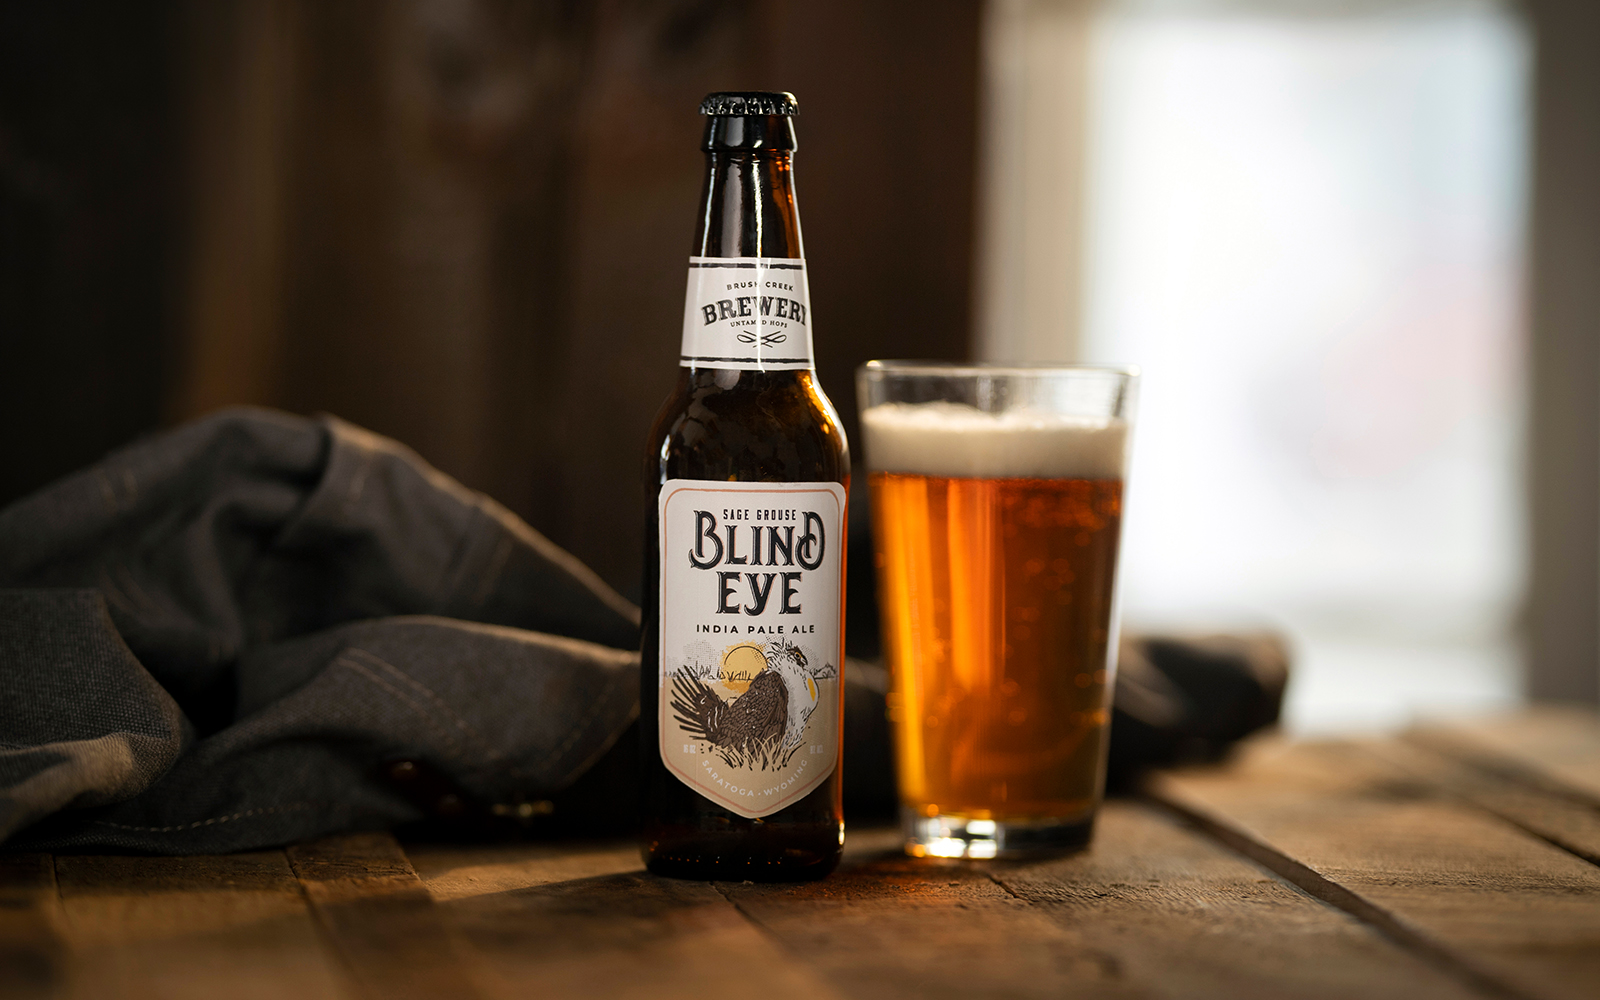 A bottle and a glass of Brush Creek Brewery beer collection, Blind Eye, on top of a rustic wood table